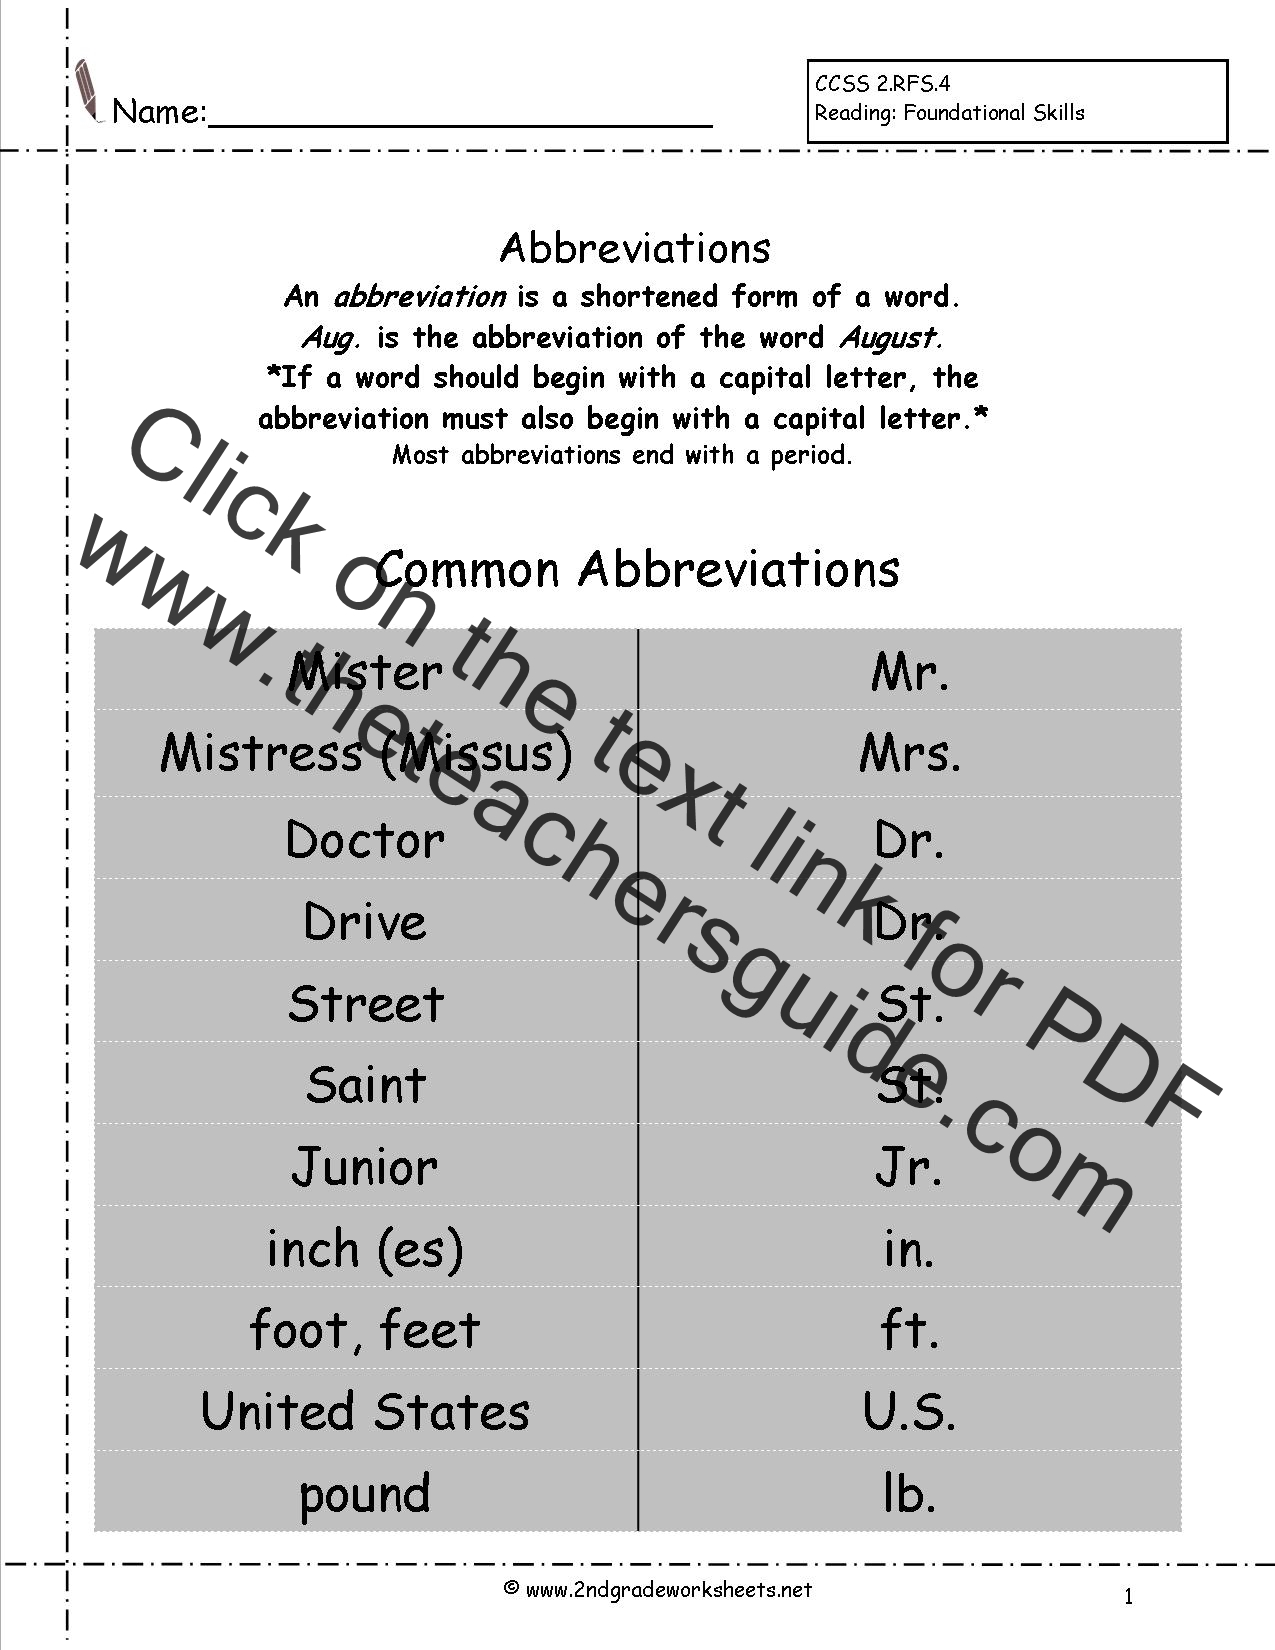 Worksheets Contractions Grammar Worksheets free languagegrammar worksheets and printouts abbreviaitons worksheets